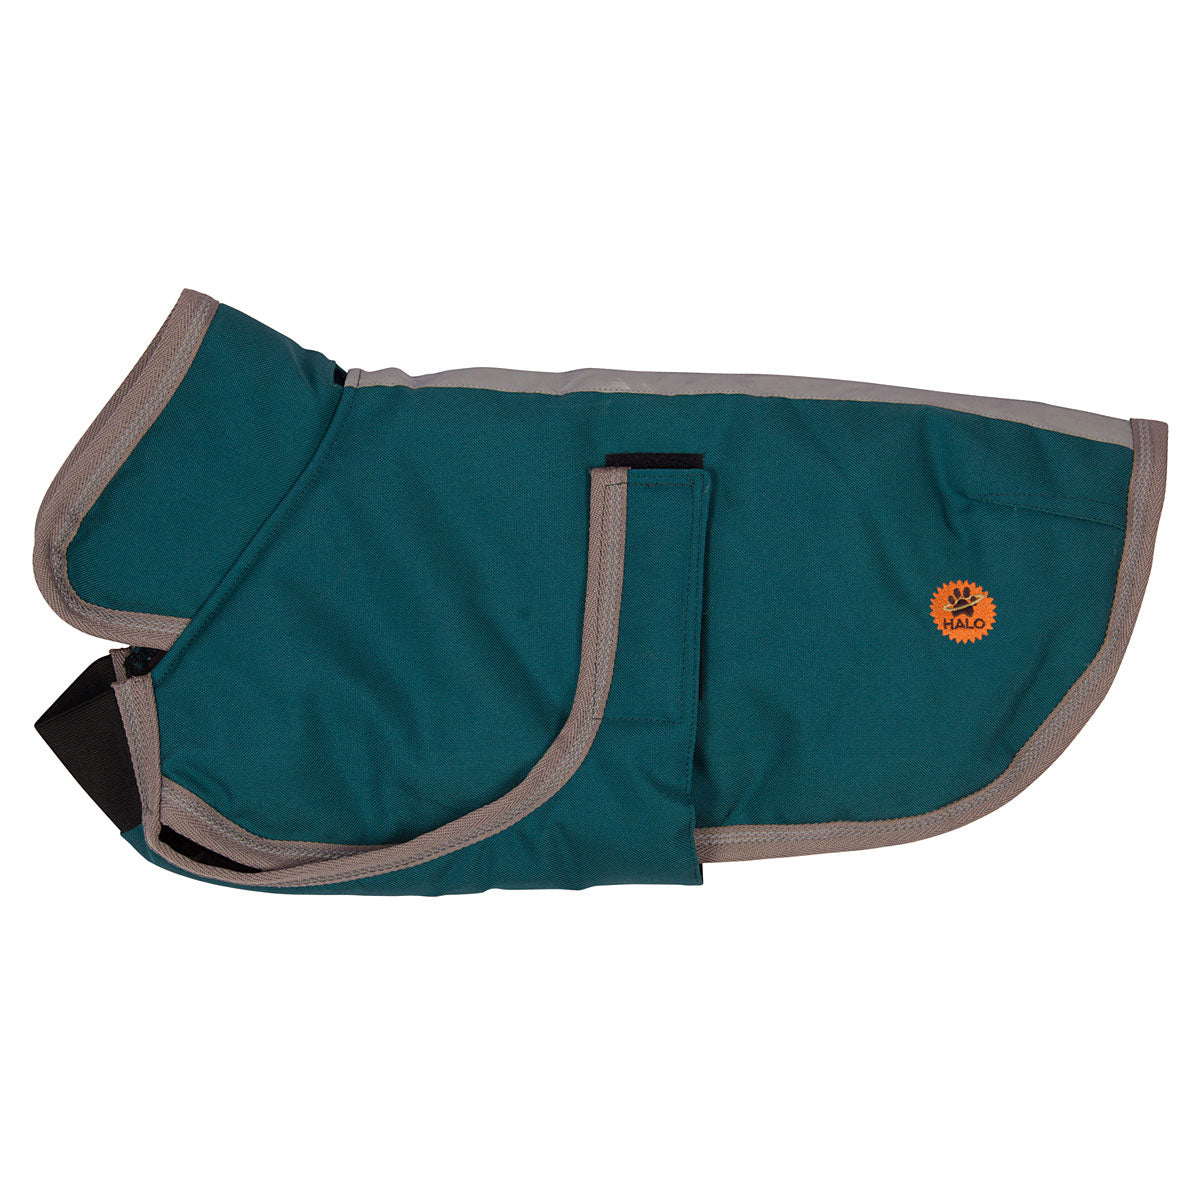 Halo Major Dog Coat with Collar_2188